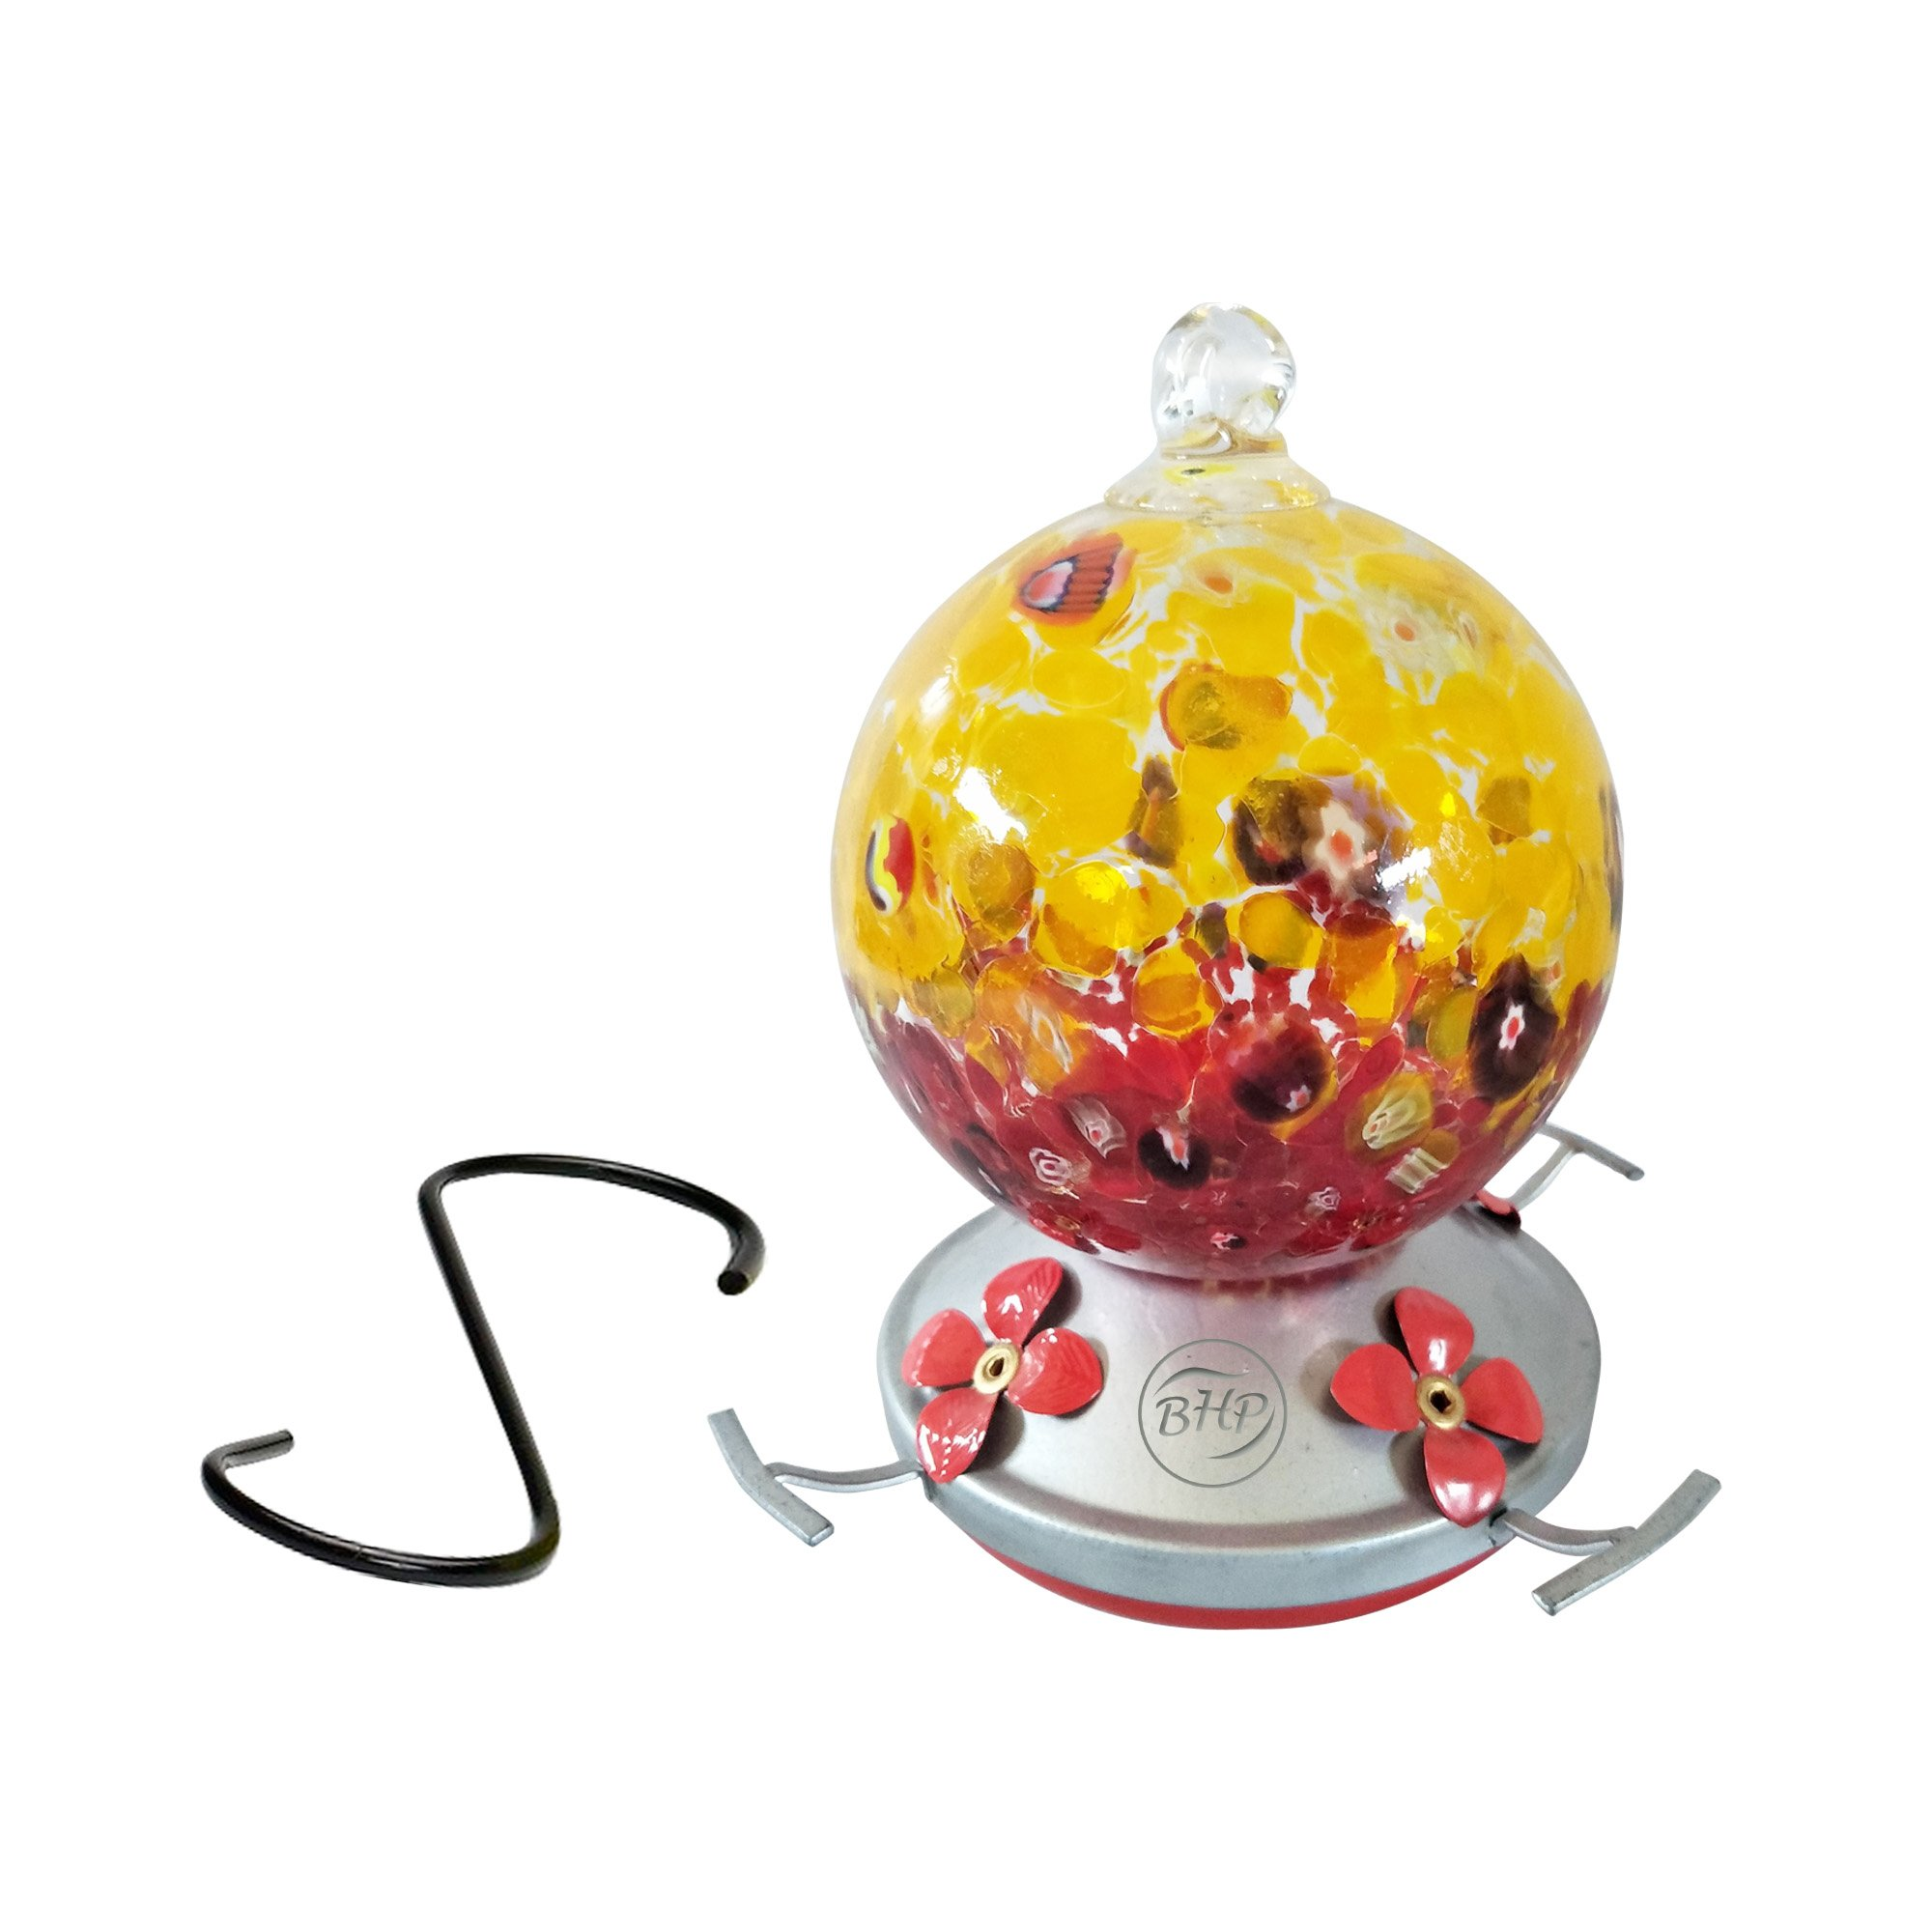 Best Home Products Hummingbird Feeder, Blown Glass, Cranberry Popcorn, 3 Cups